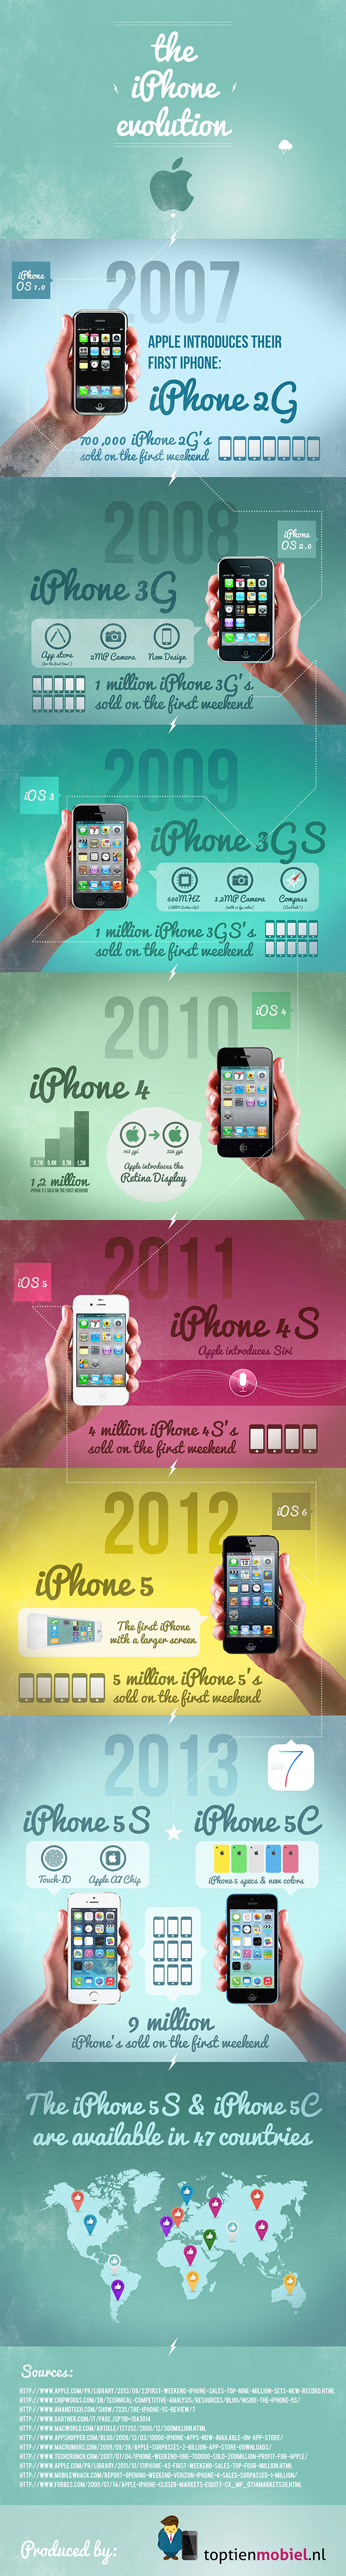 iphone-evolution-small